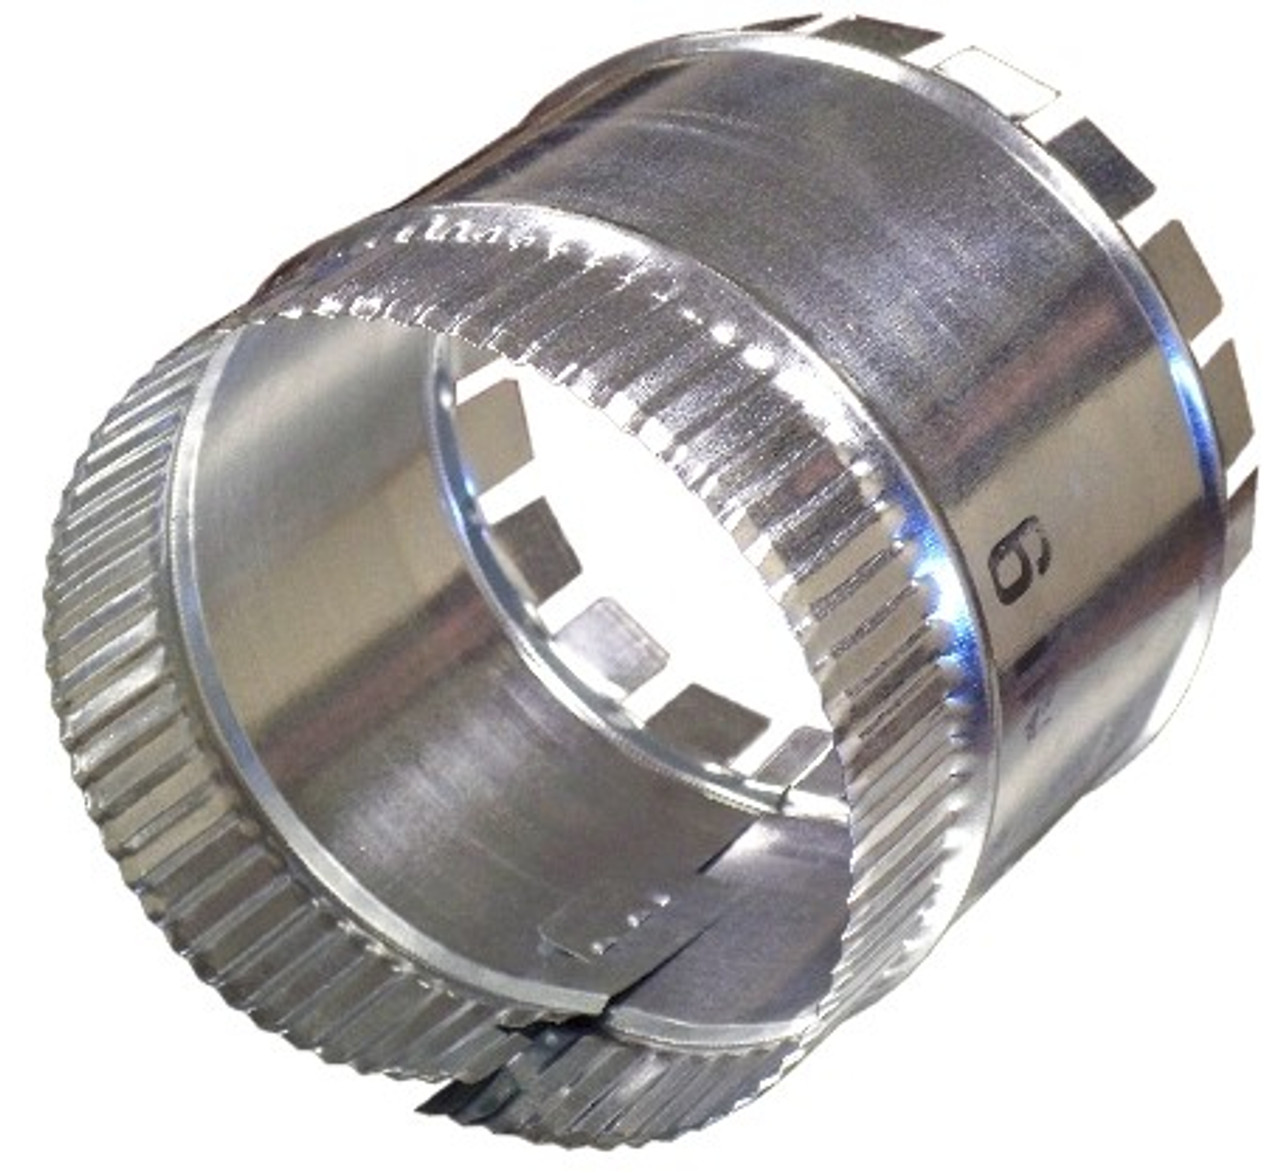 6-in Hvac Duct Manual Volume Damper with Sleeve